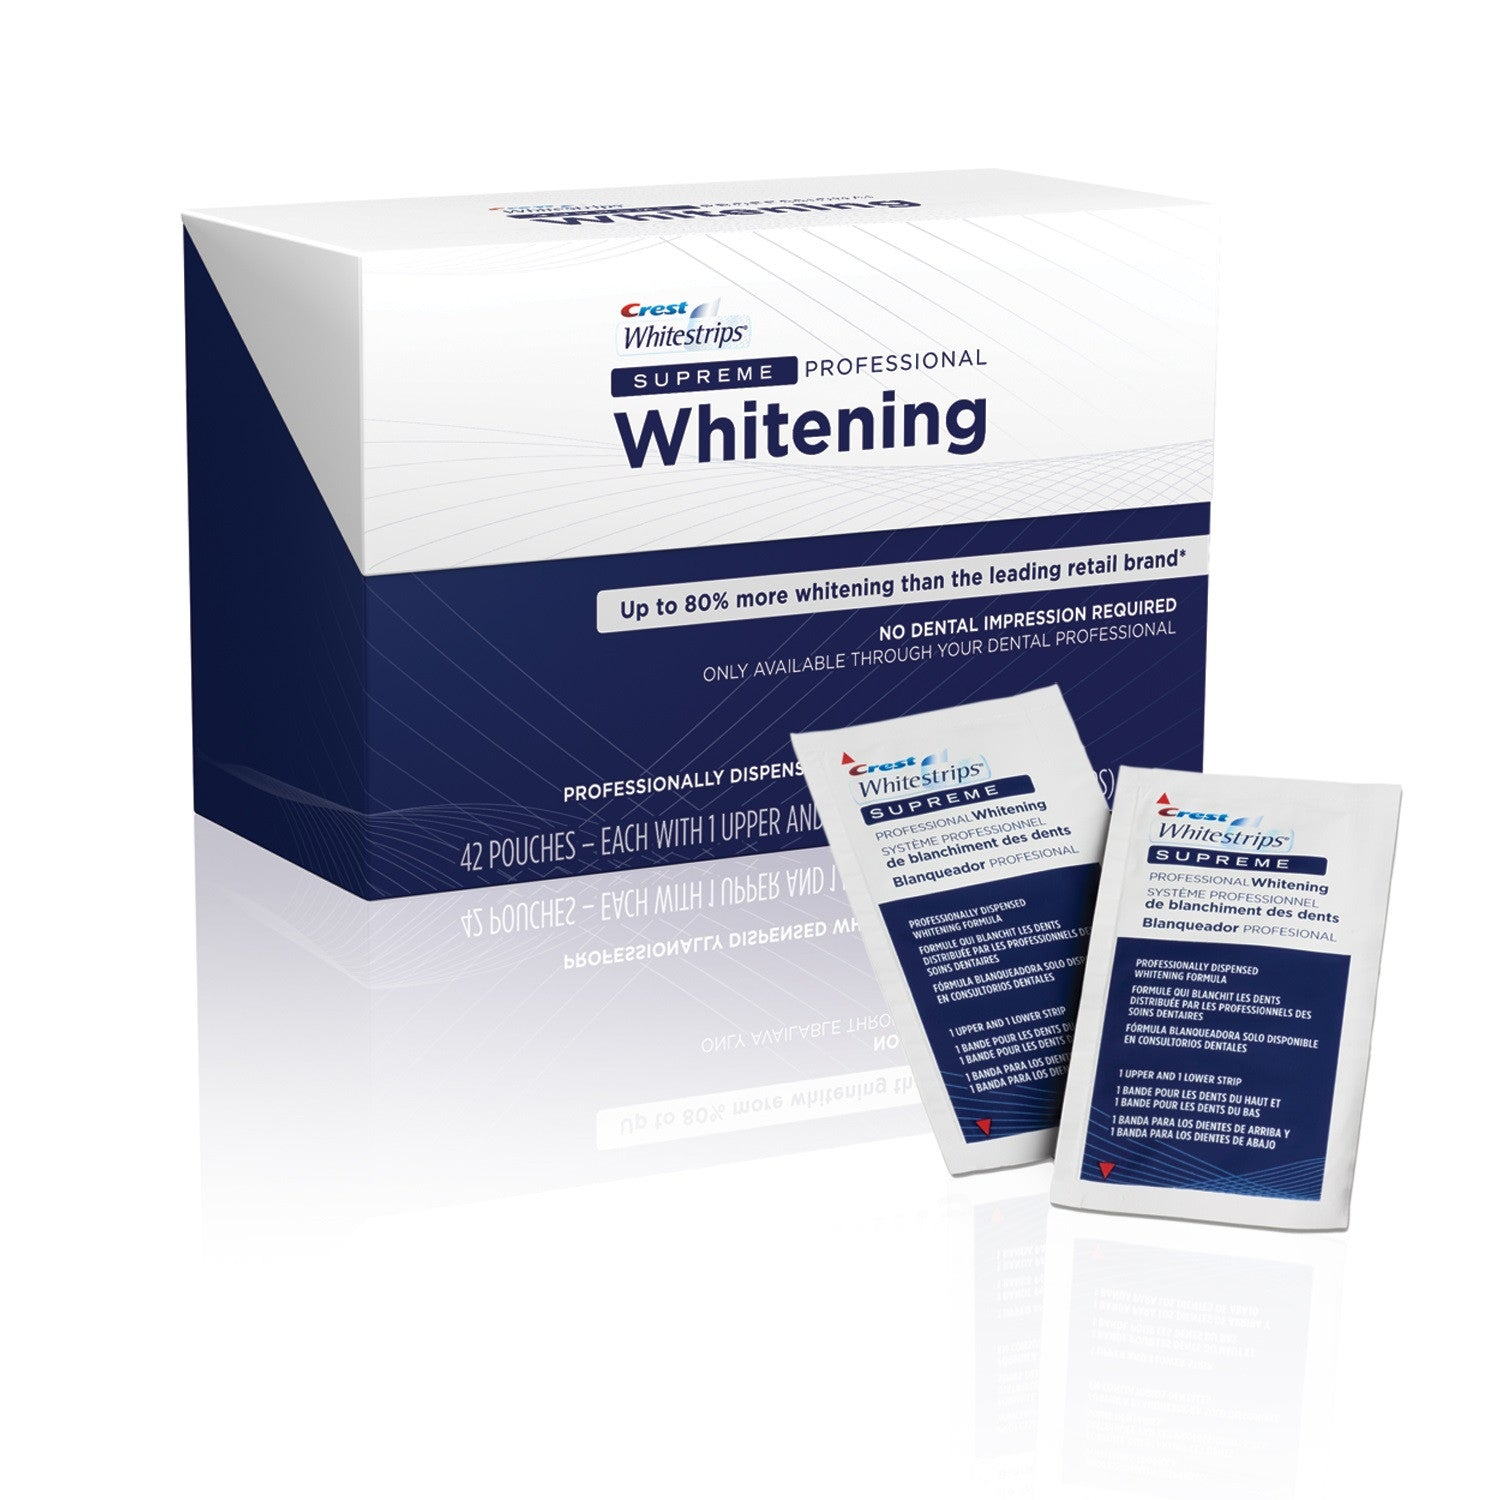 Crest Whitestrips Supreme, Teeth Whitening, Not Sold In